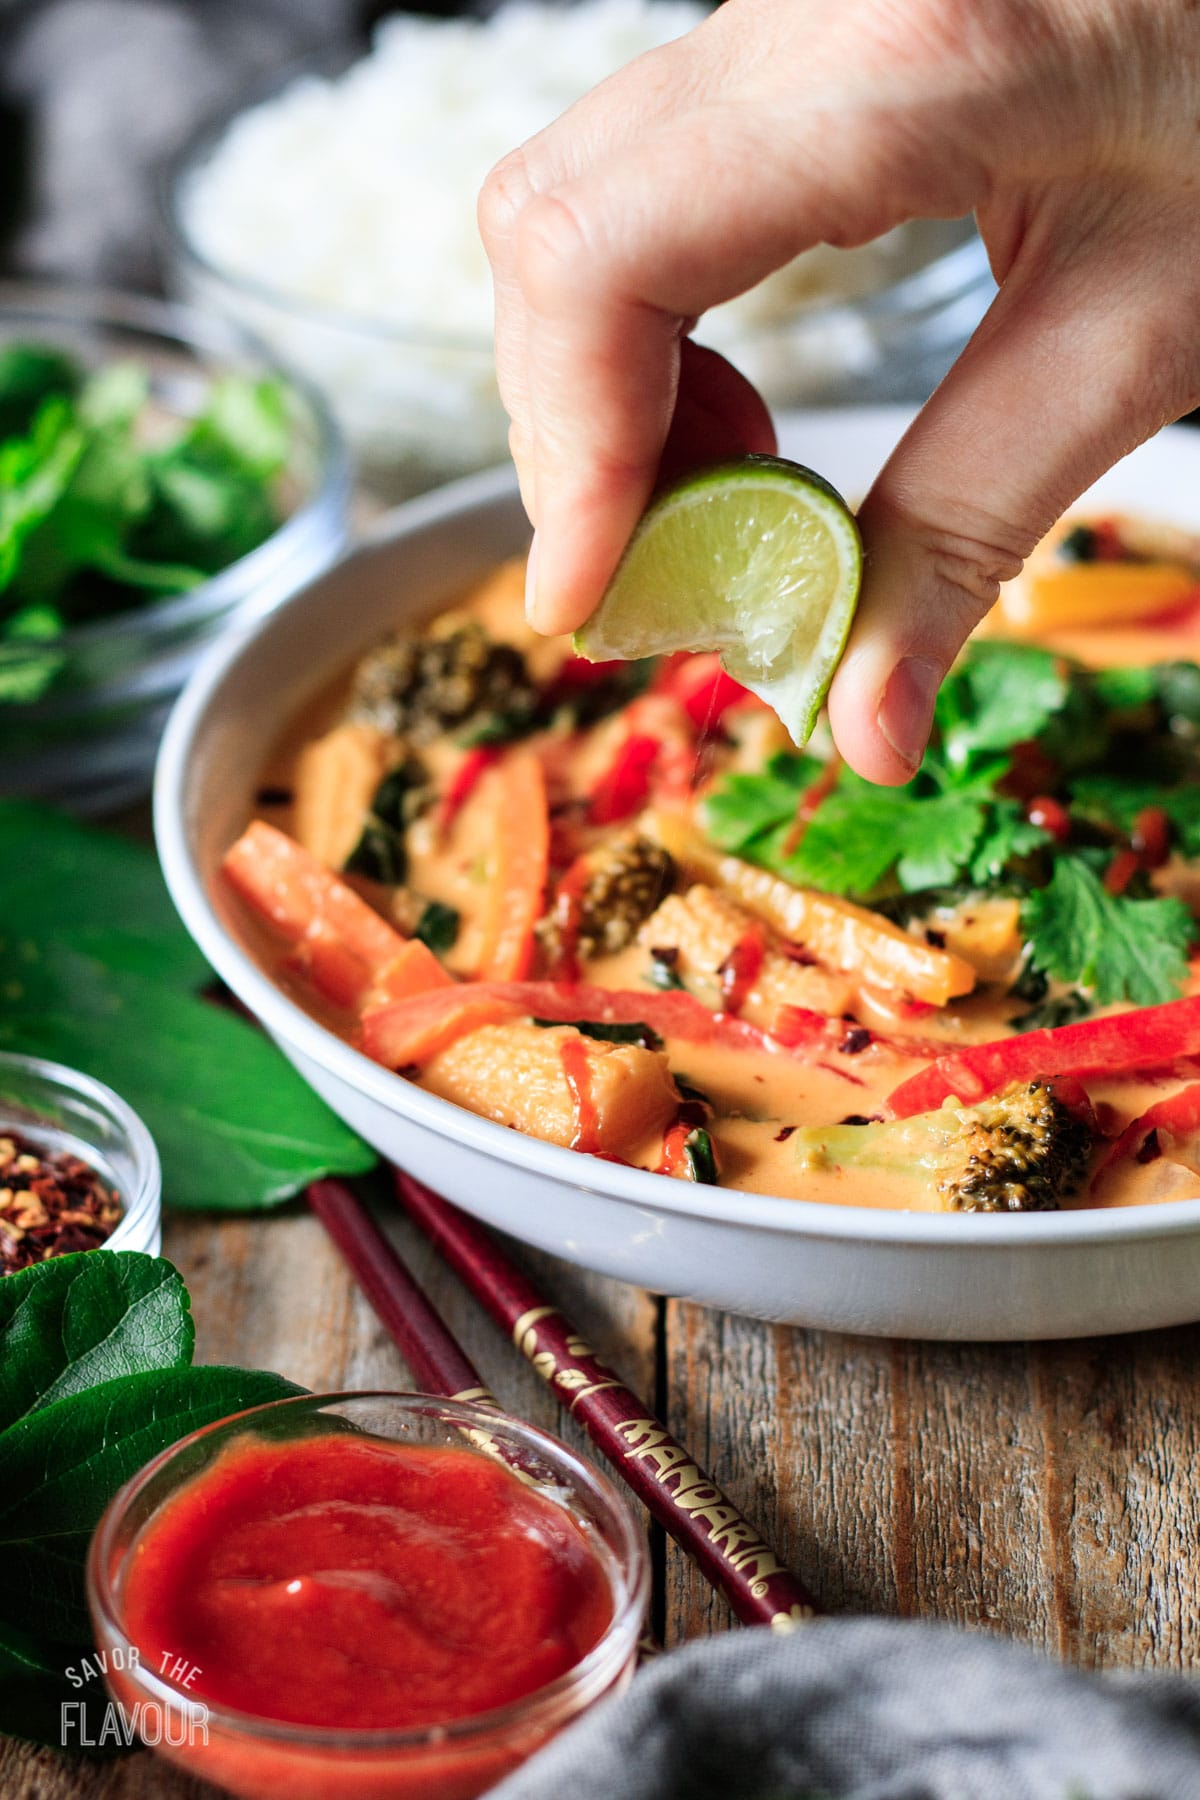 person squeezing lime juice on a bowl of Thai red curry